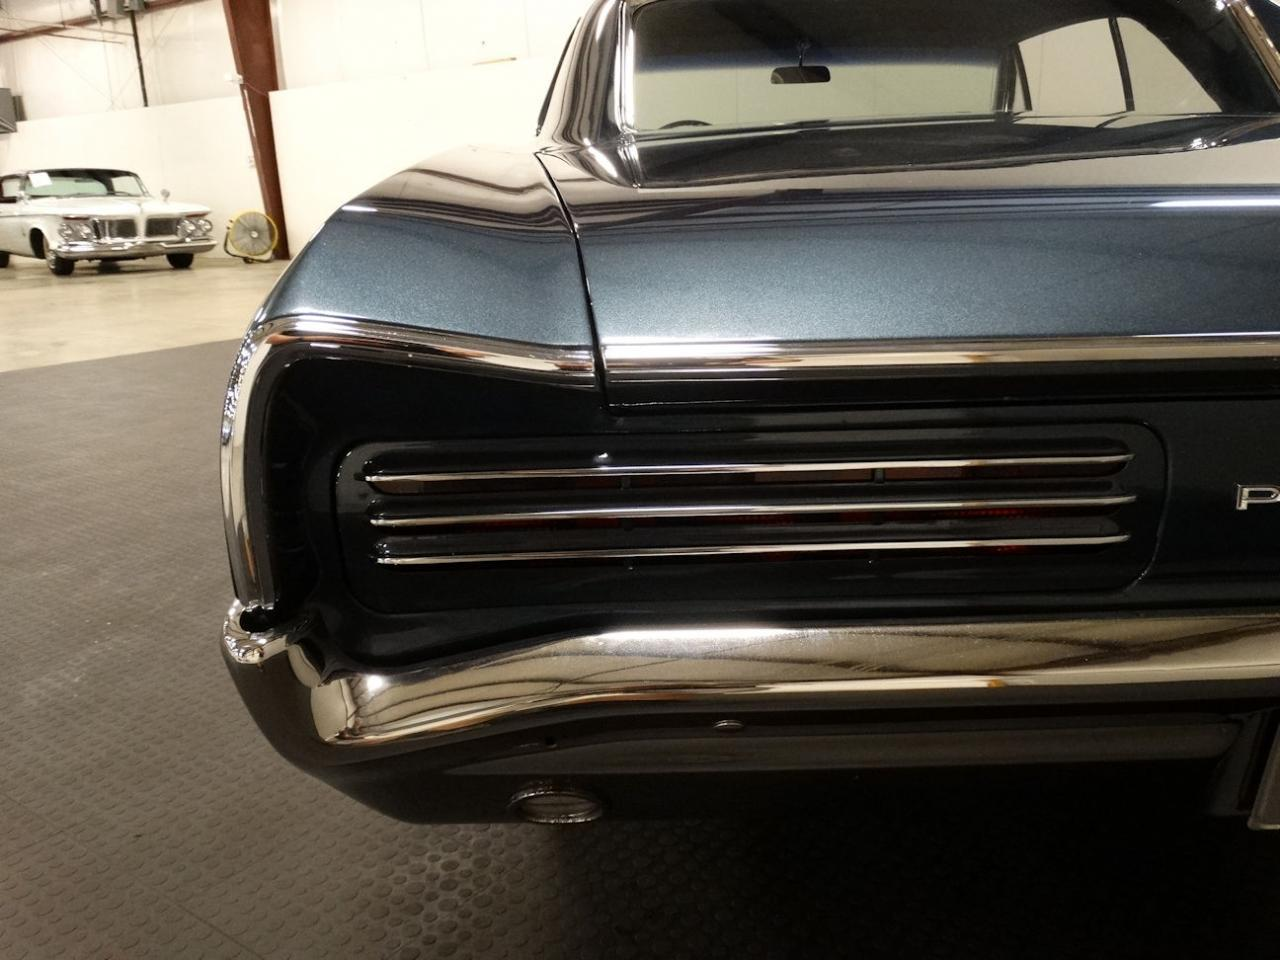 Large Picture of Classic 1966 Pontiac GTO located in Indiana - $58,000.00 Offered by Gateway Classic Cars - Louisville - LHK2